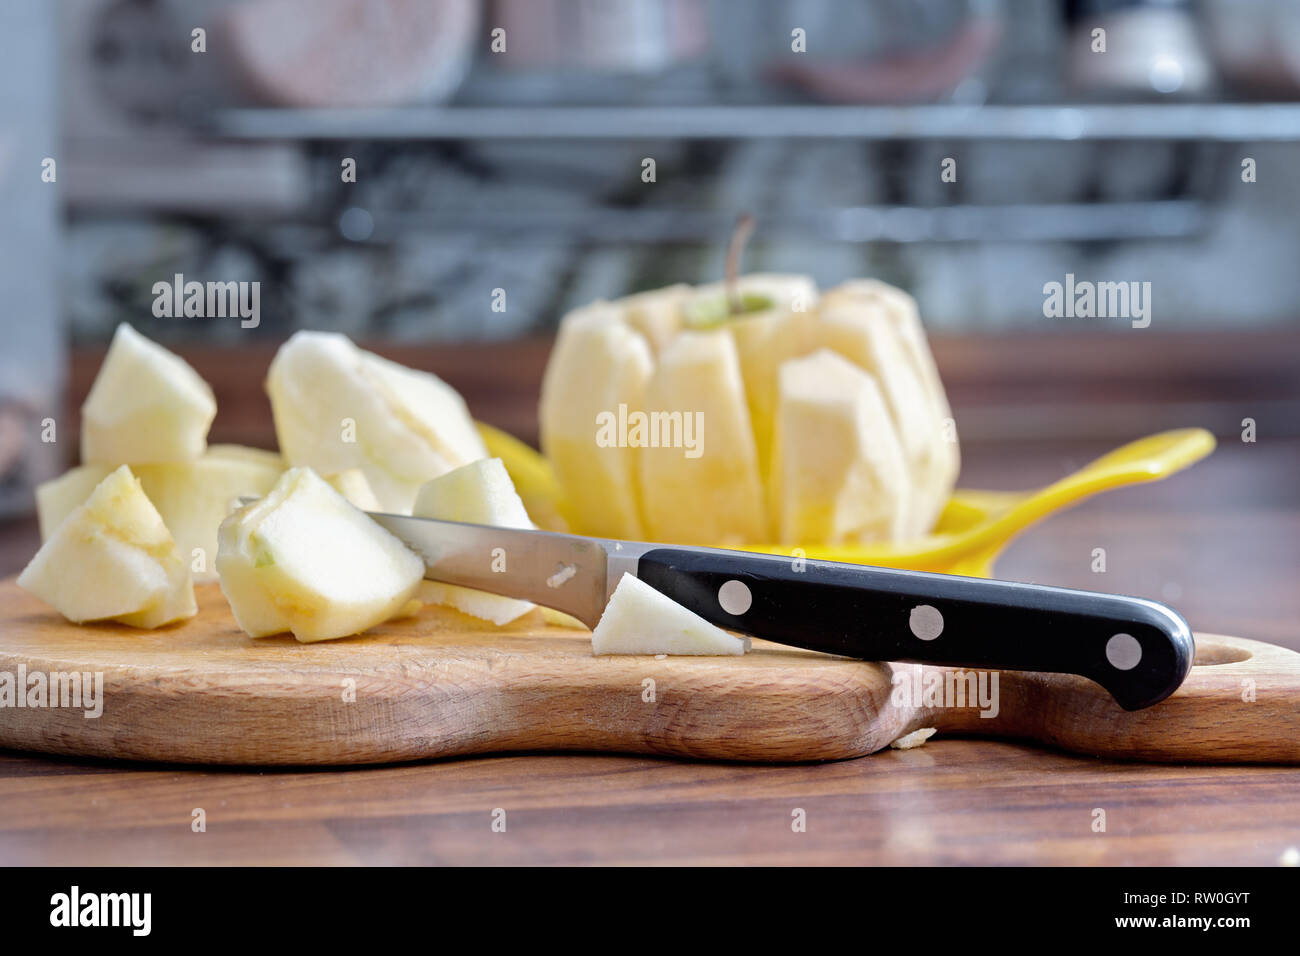 Slices of peeled apple and a knife on a cutting board. - Stock Image